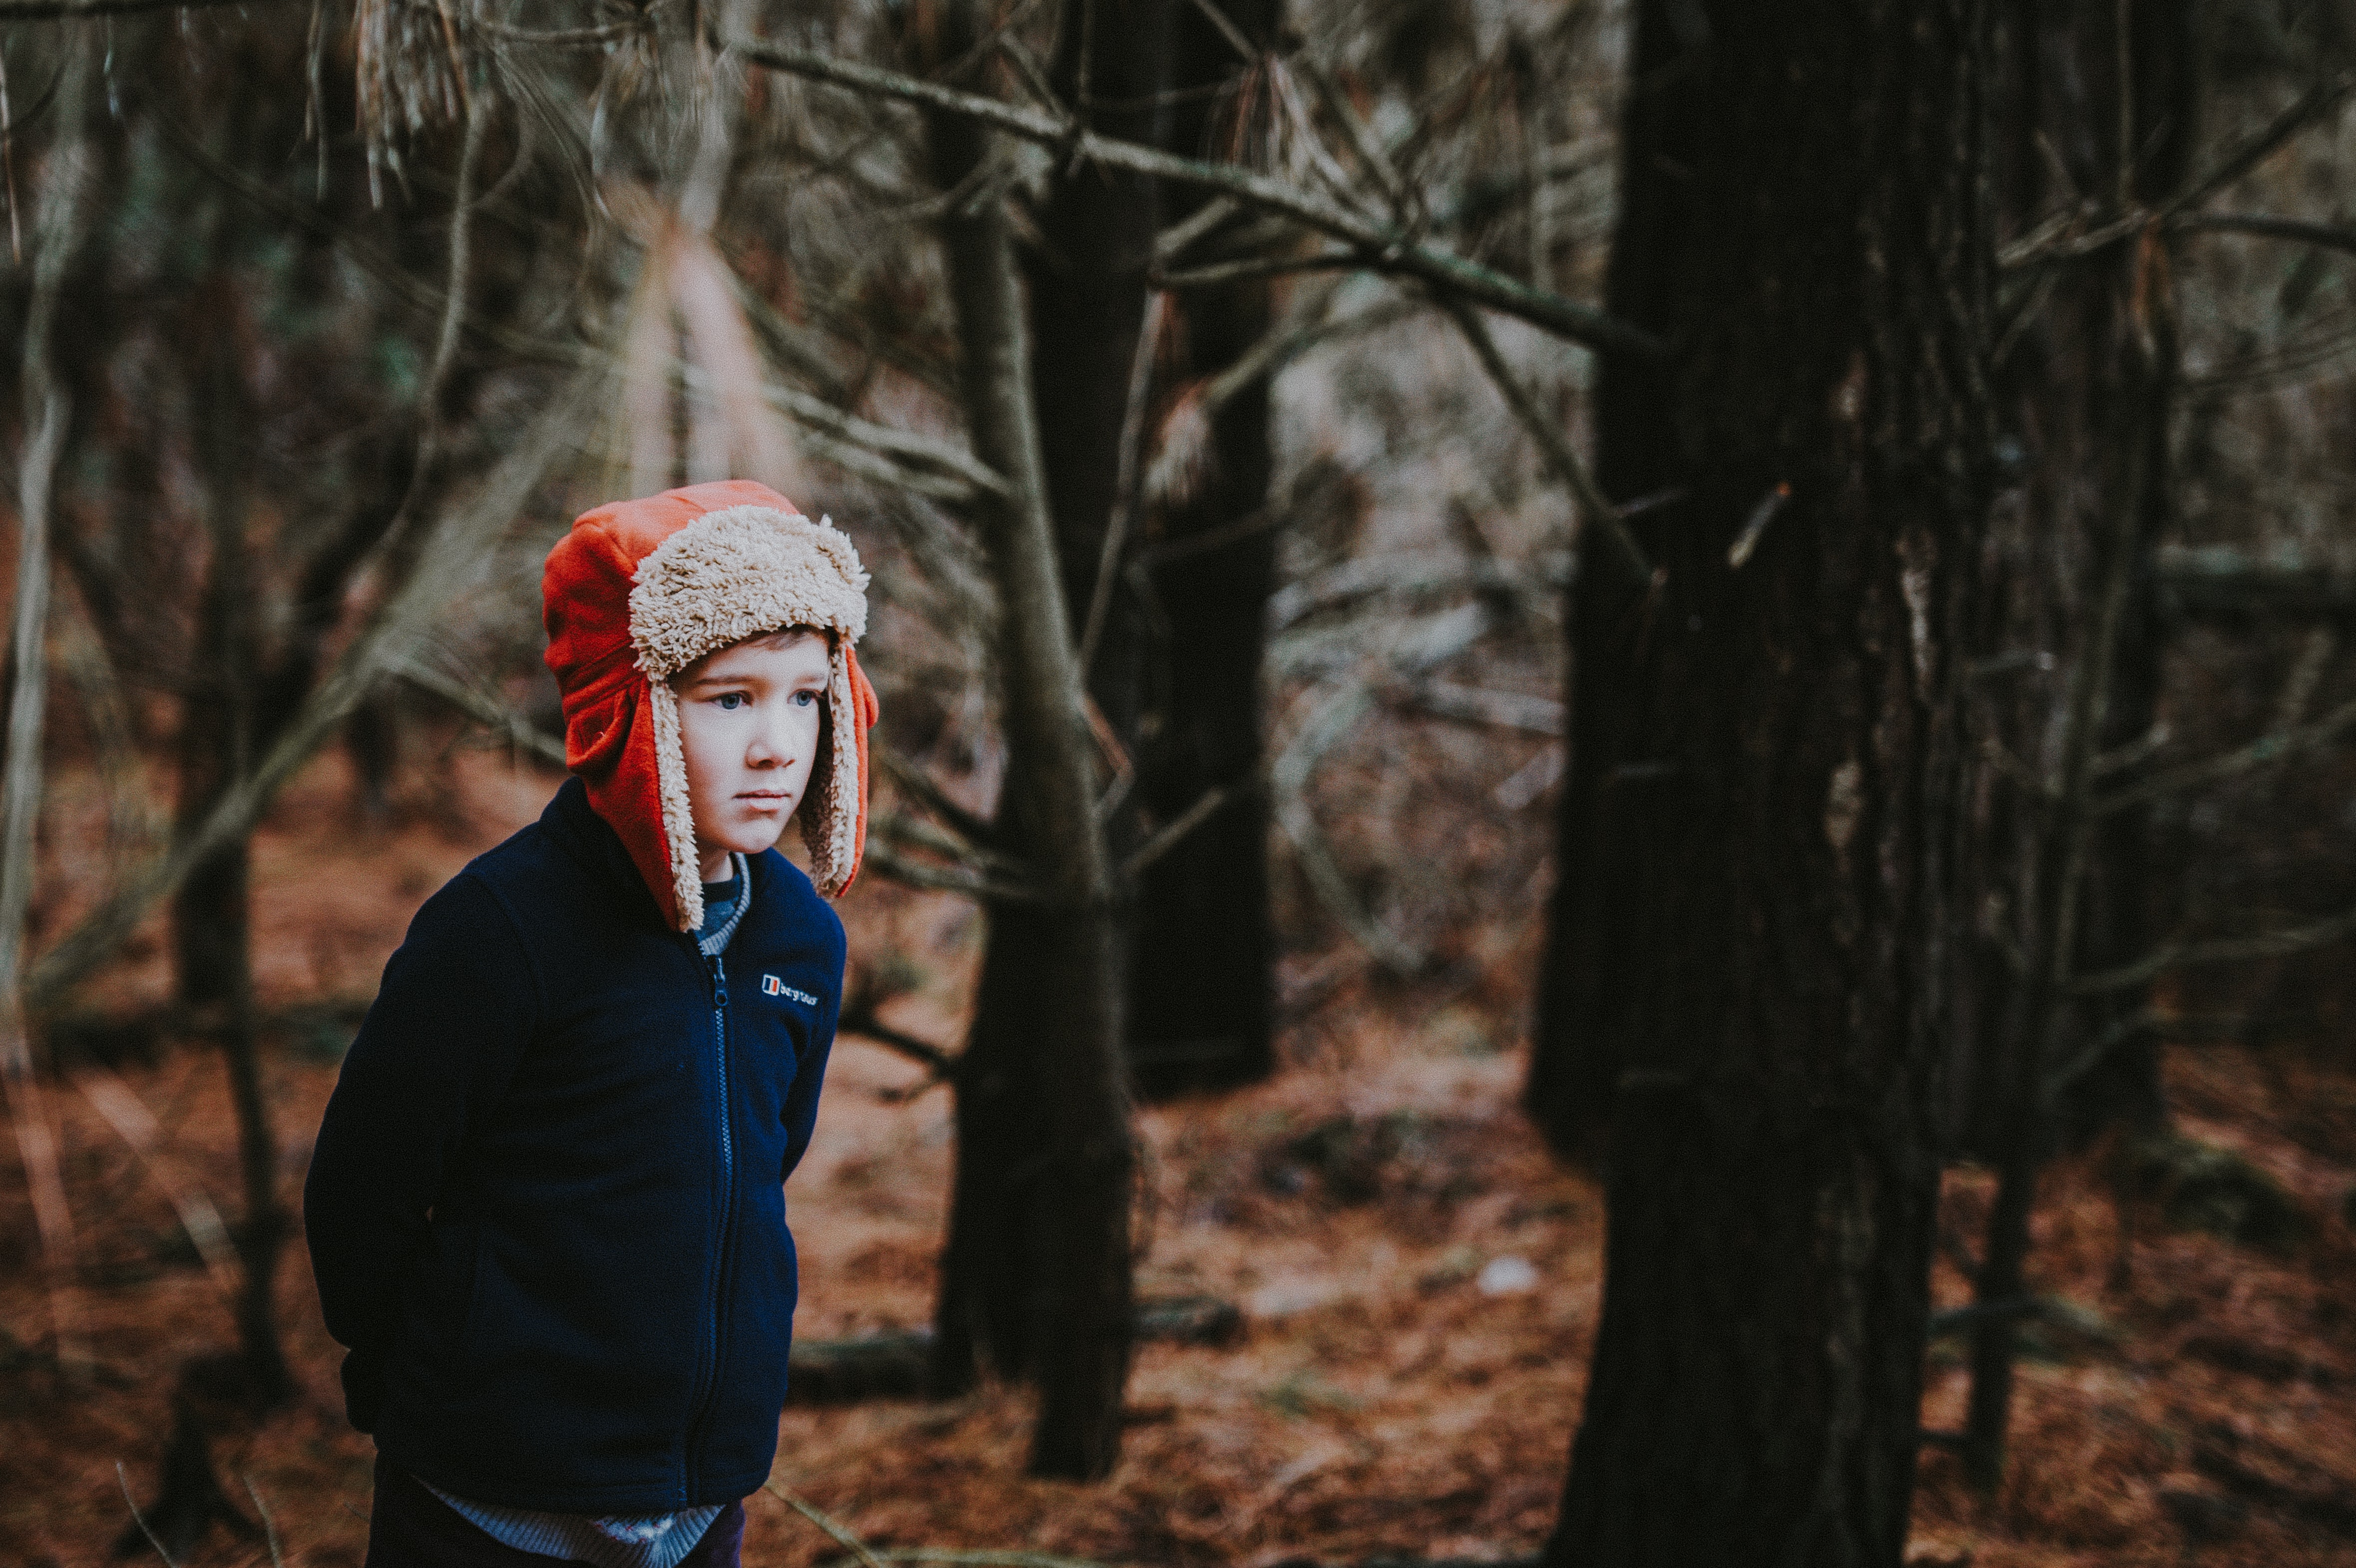 boy wearing aviator hat surrounded by trees